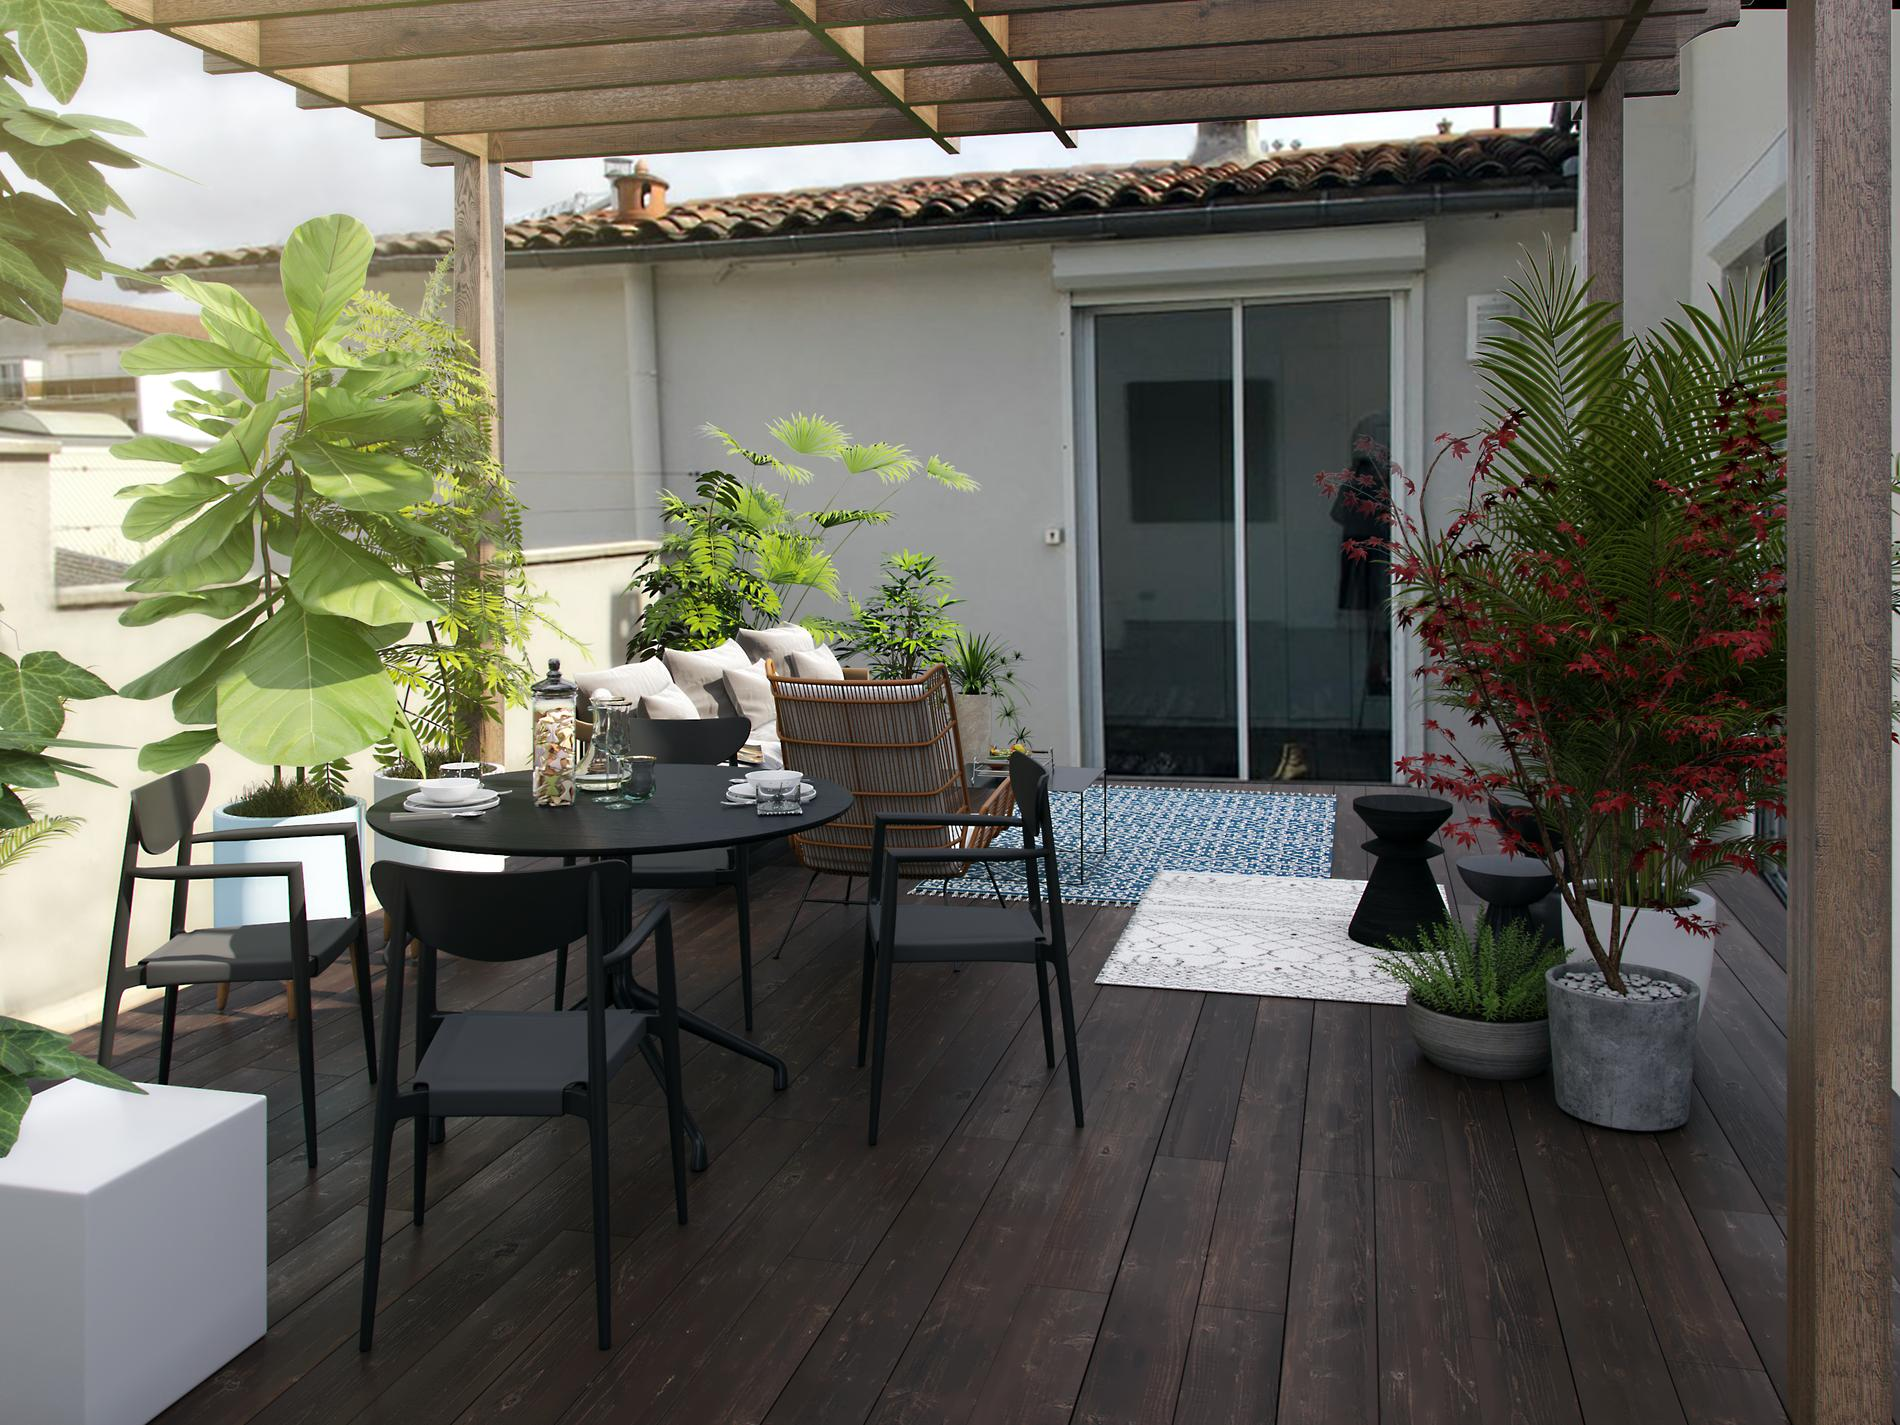 Tapis Afaw La Redoute comment décorer sa terrasse ? - madame figaro